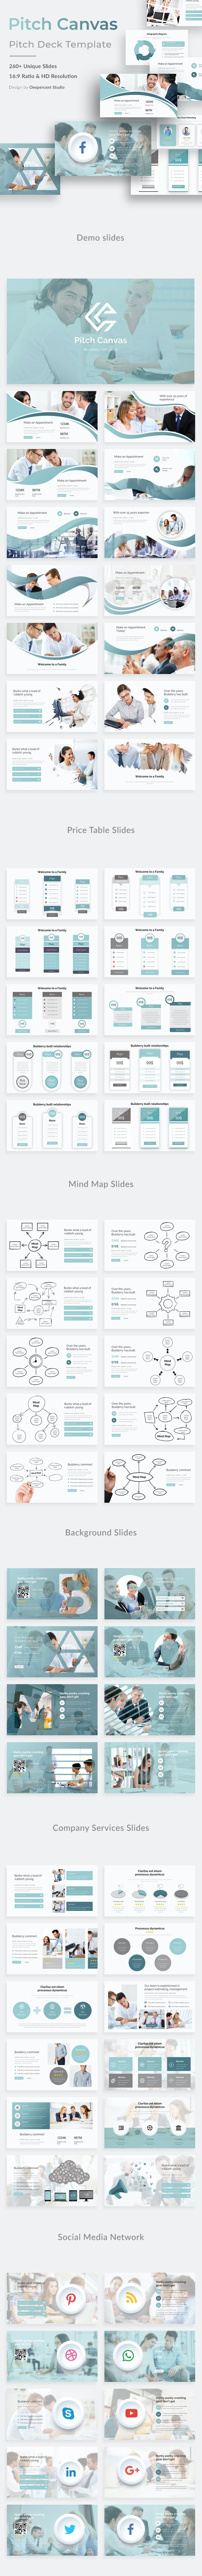 Pitch Canvas Business Keynote Template - Business Keynote Templates